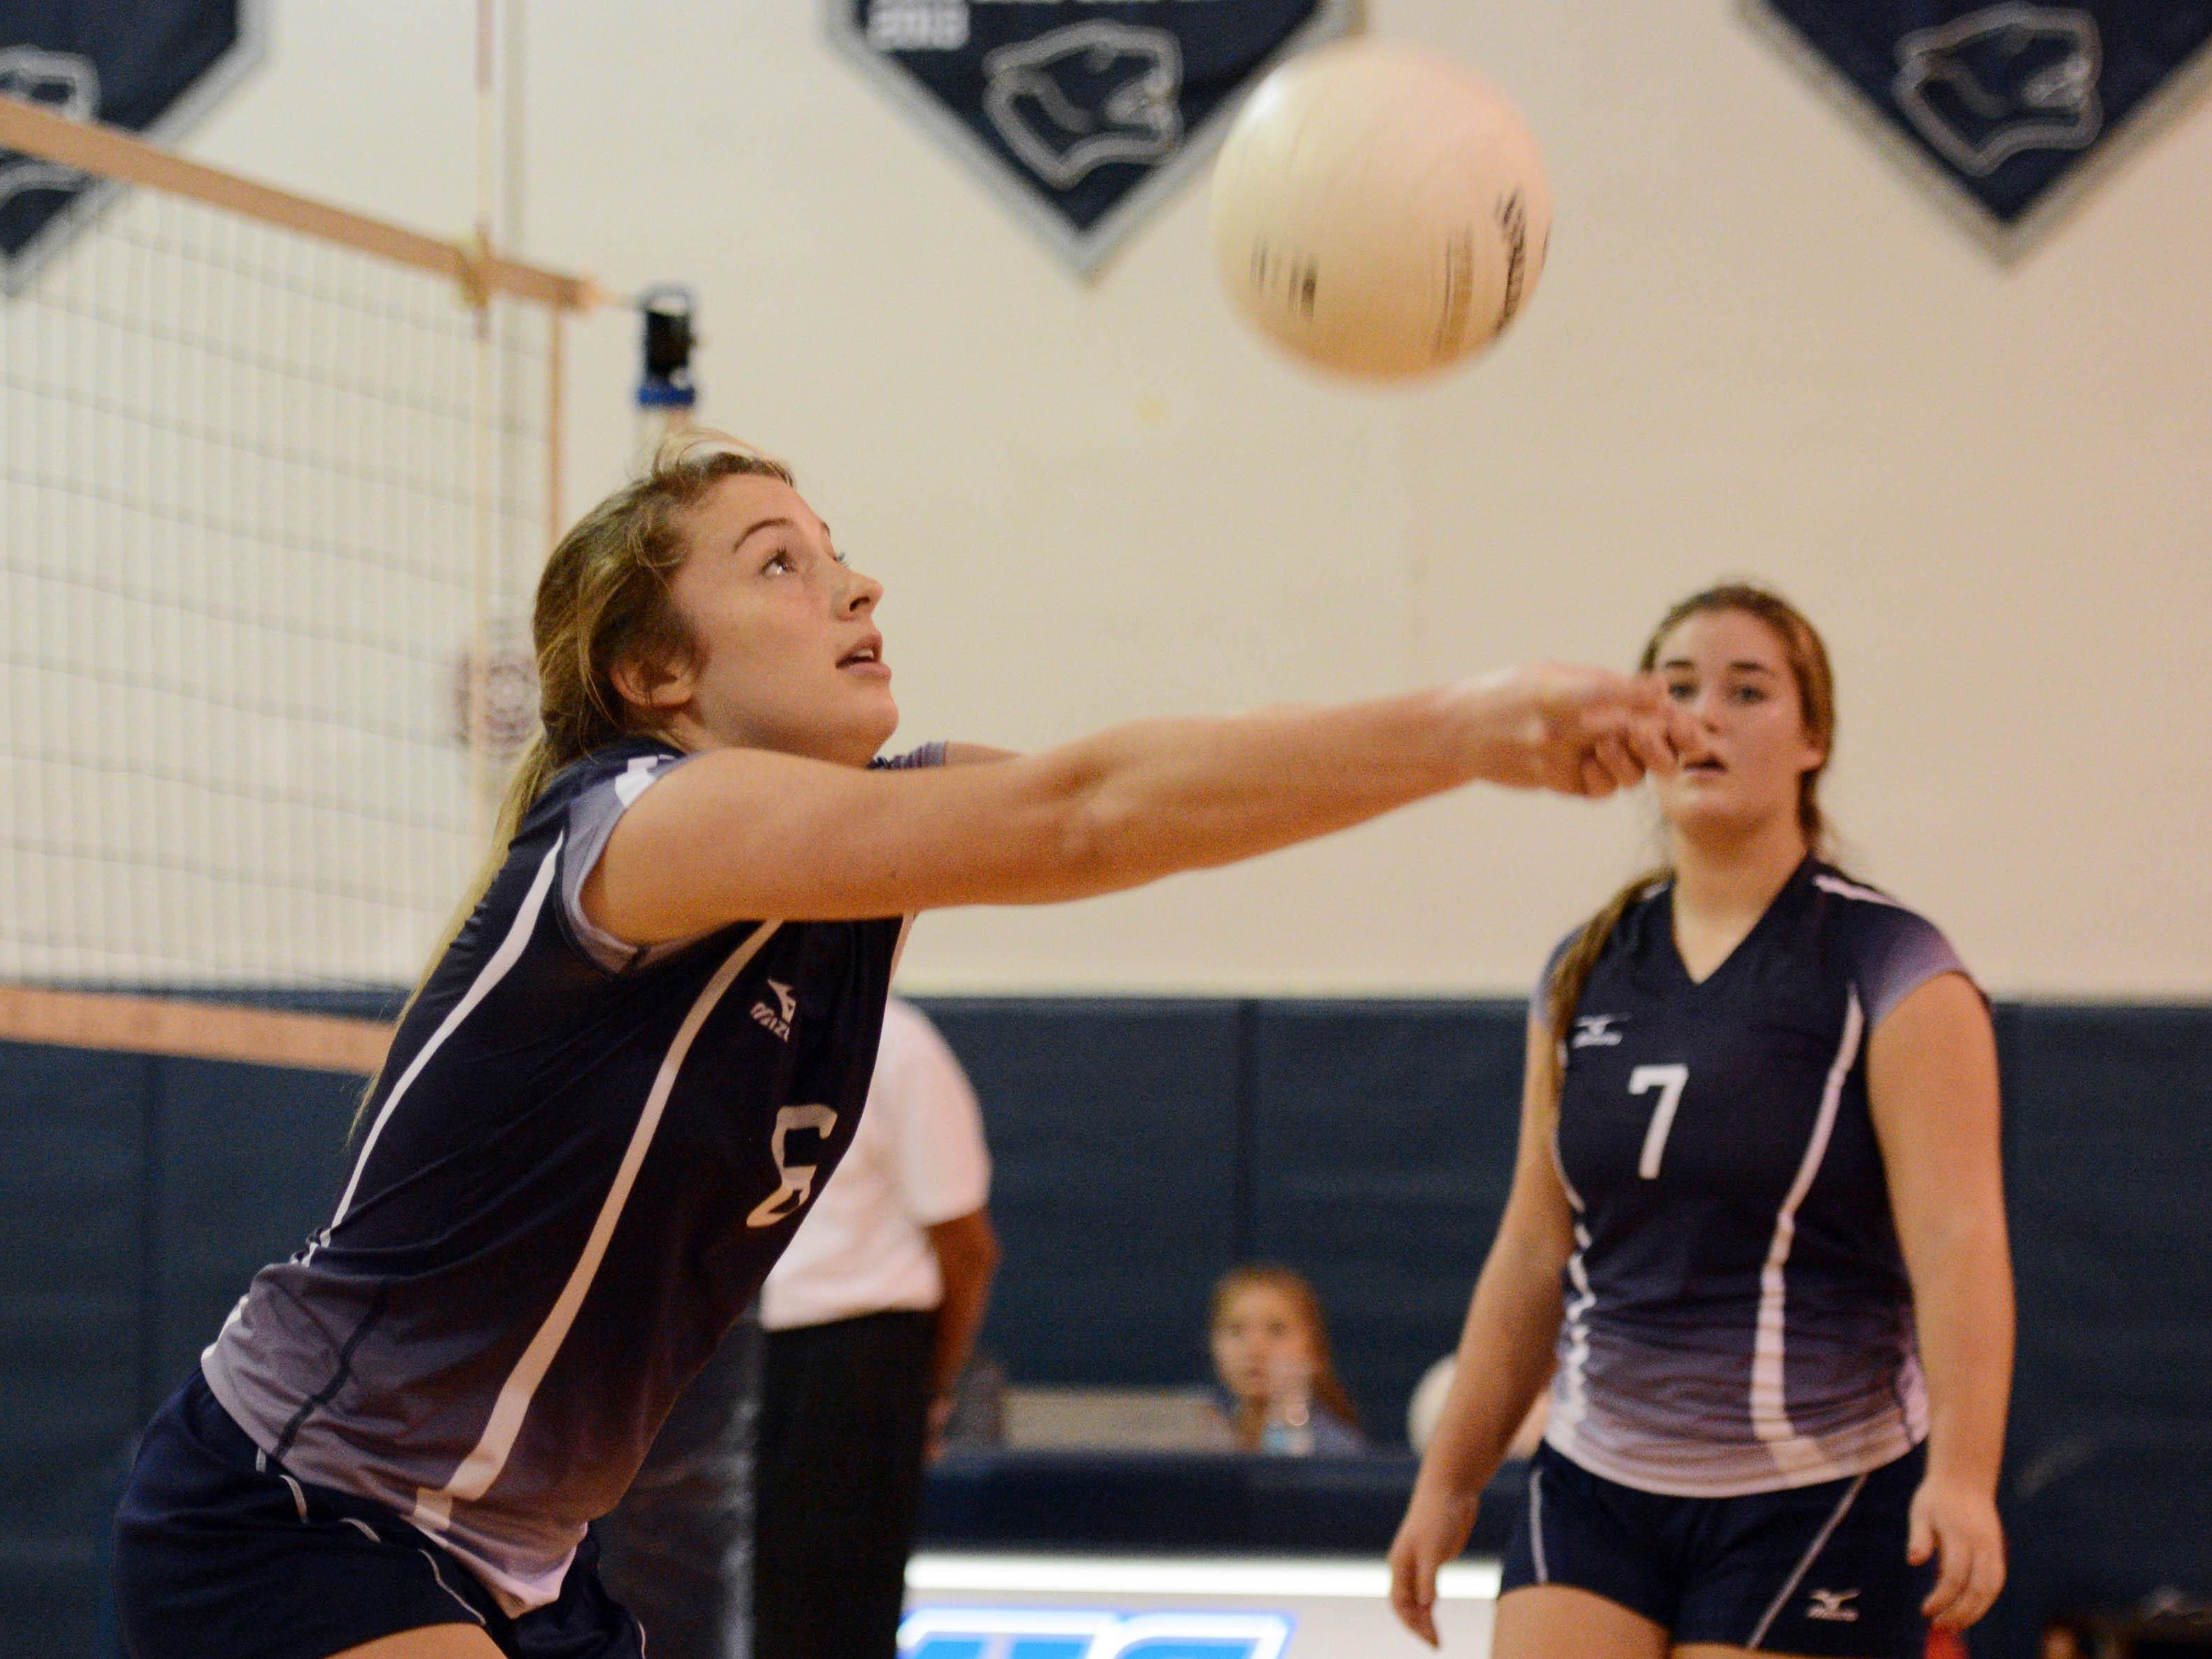 Merritt Island Christian's Macy Phillips passes to a teammate during Tuesday's regional quarterfinal volleyball match.